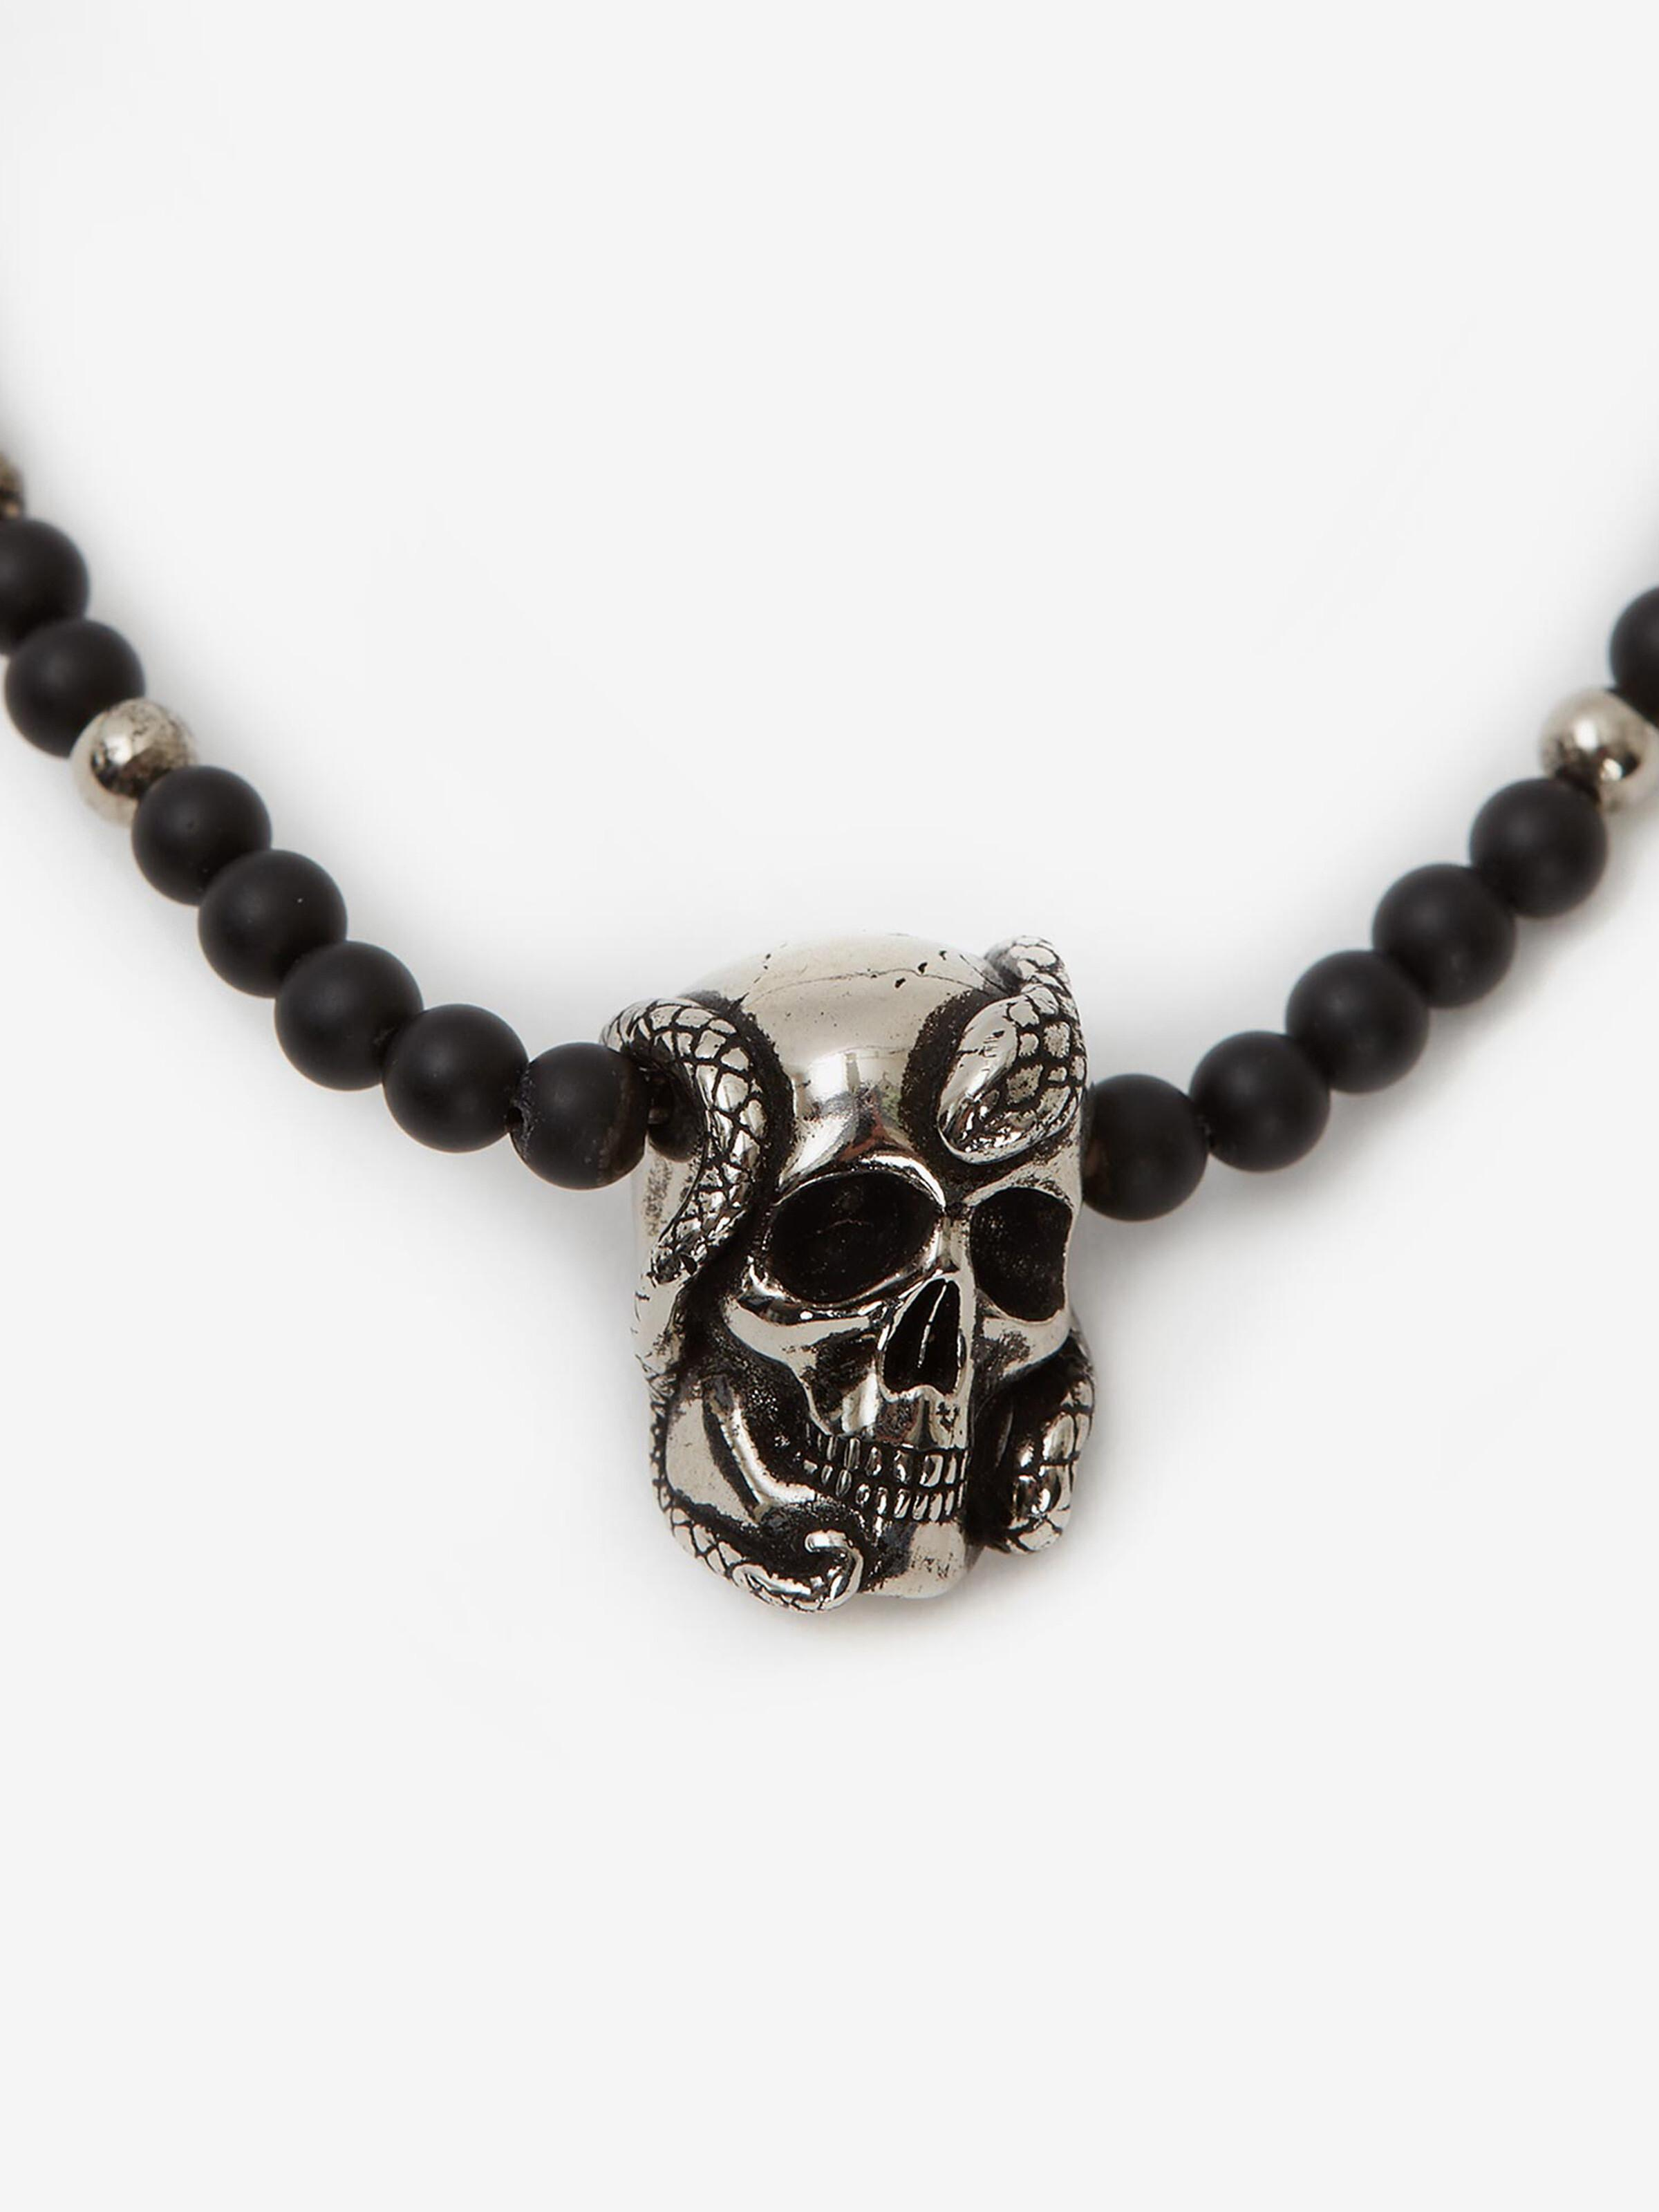 Beads and Skull Short Necklace 1